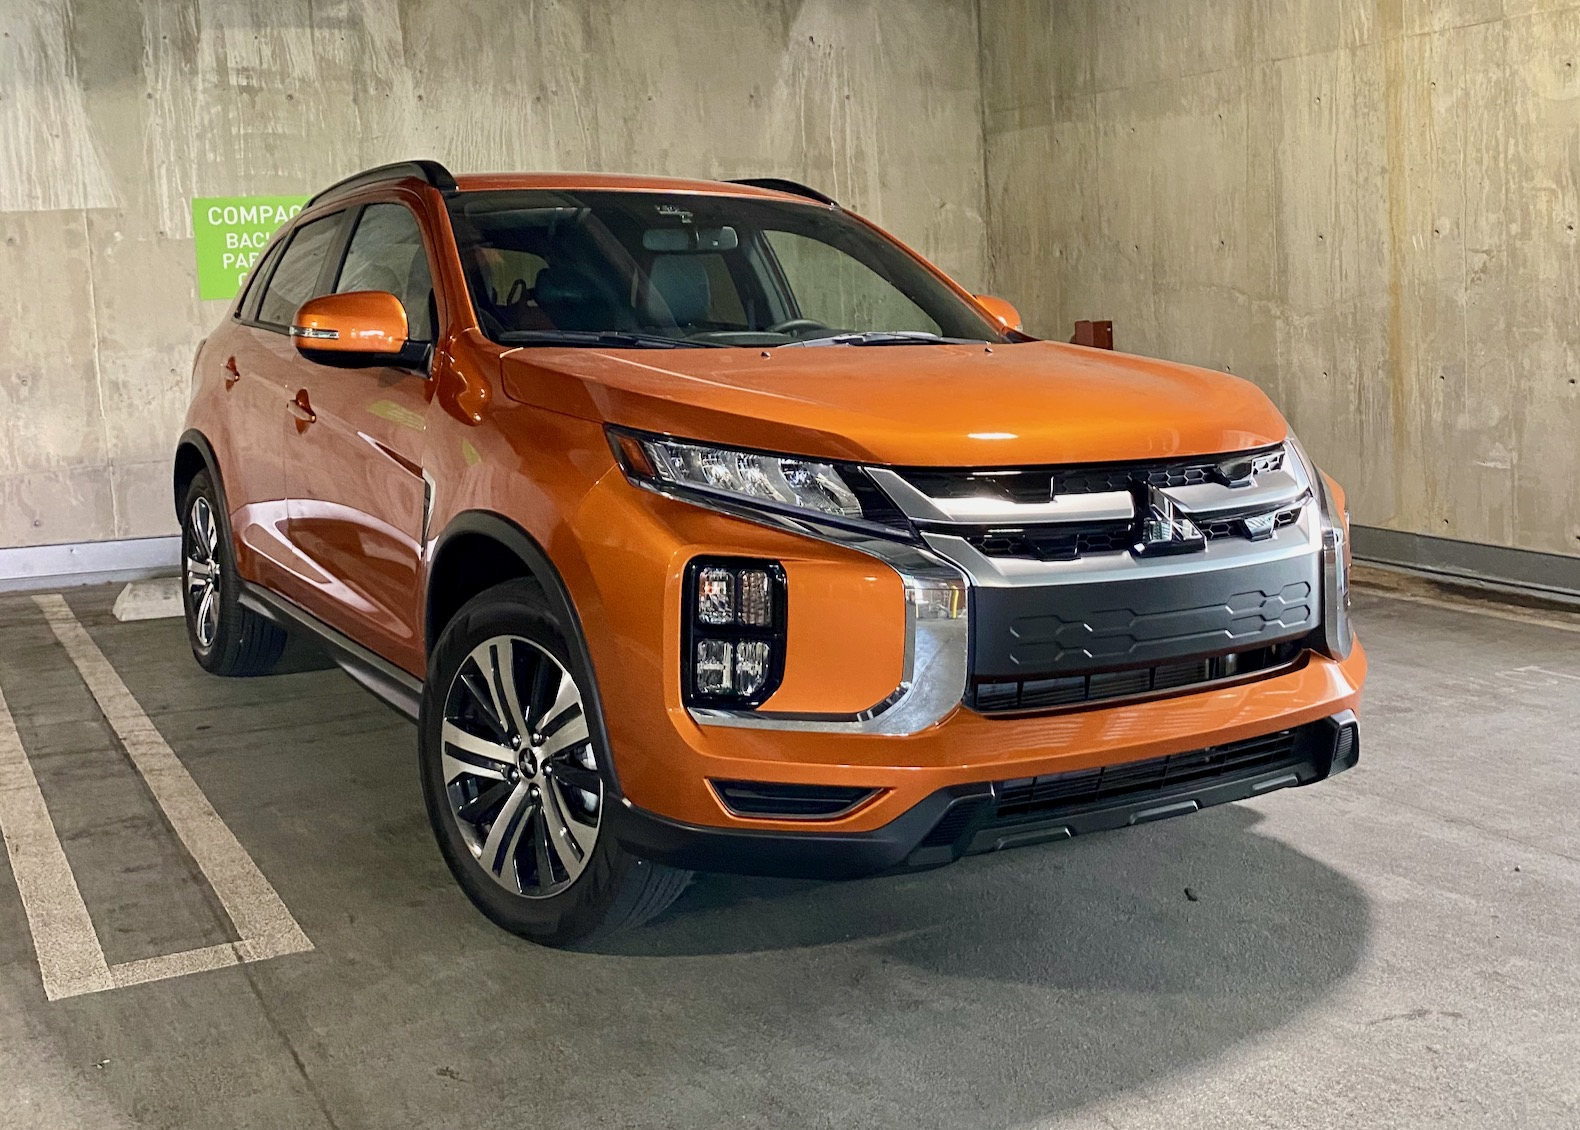 2020 Mitsubishi Outlander Sport Review Struggling To Get Noticed